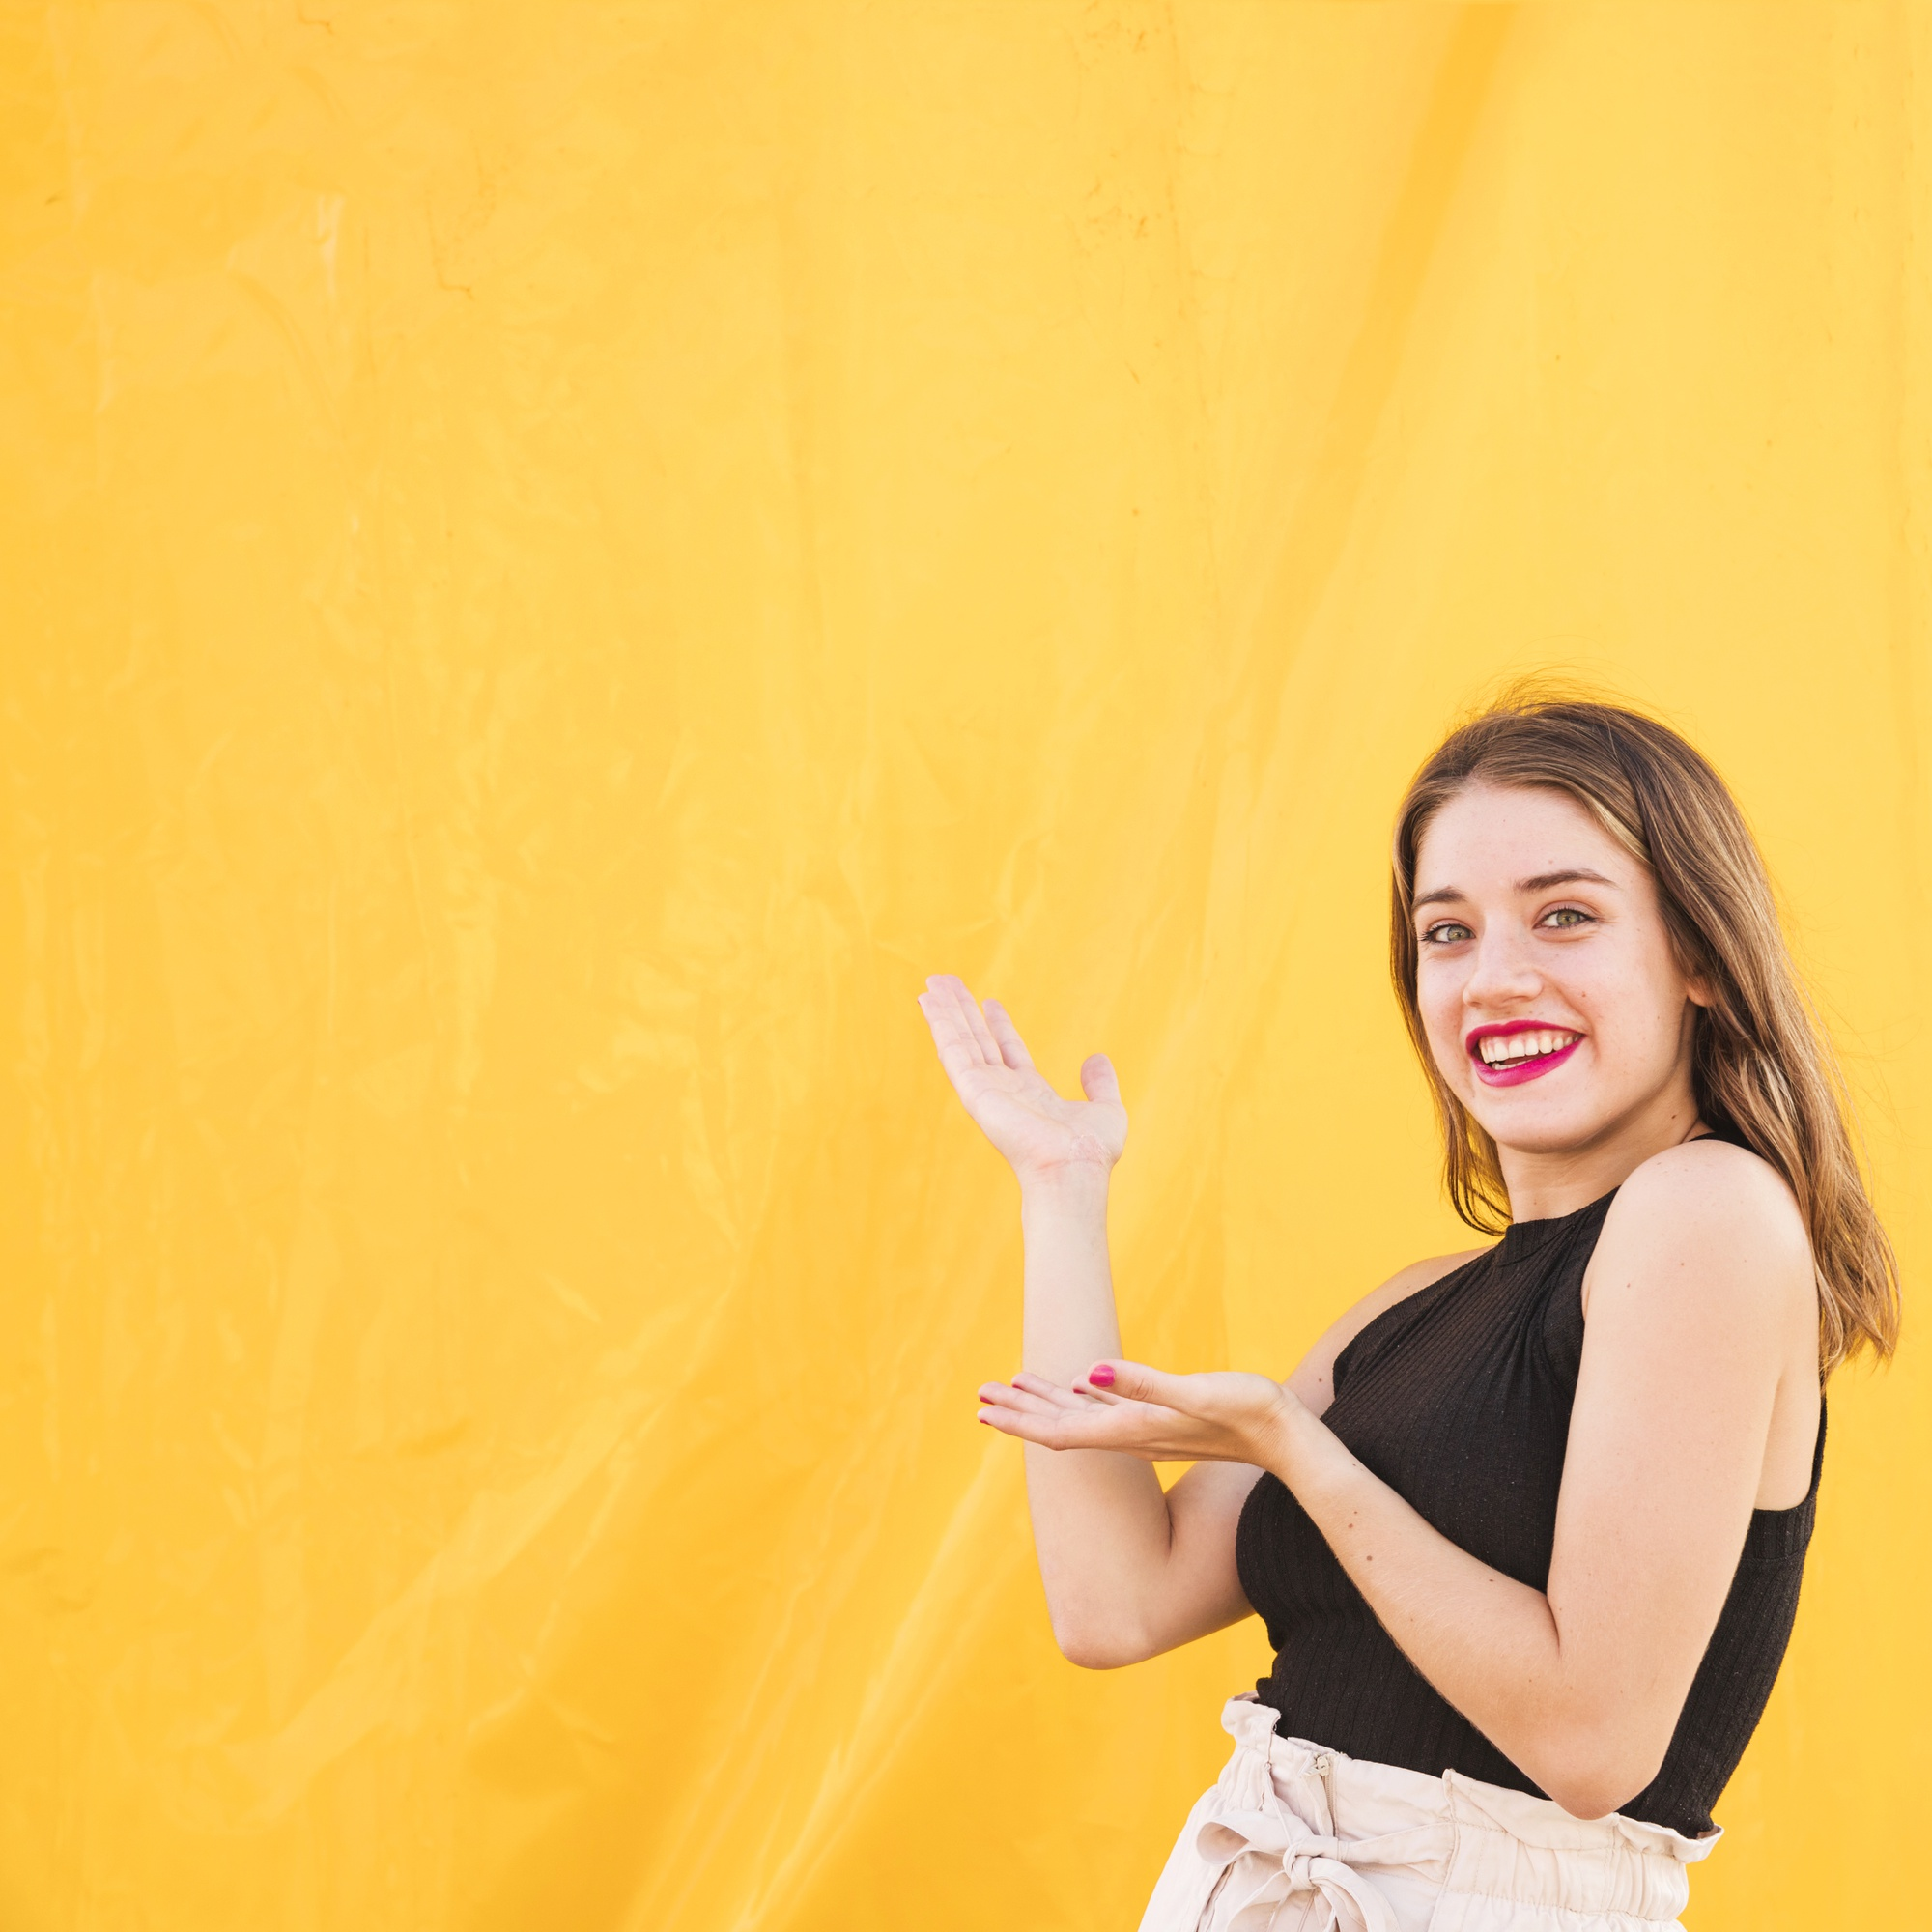 Smiling young woman presenting on yellow background